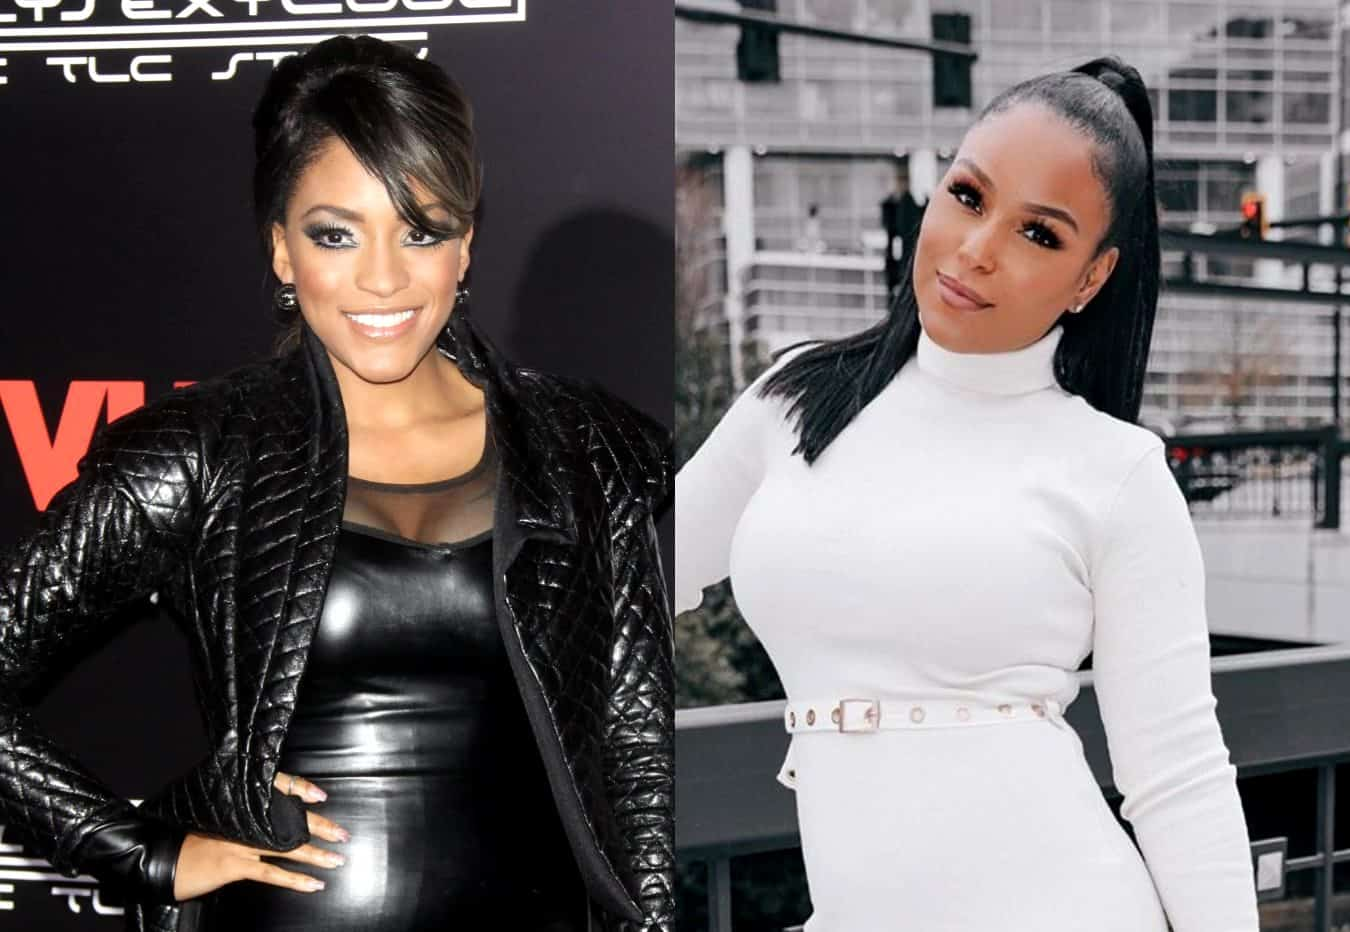 RHOA Adds Actress Drew Sidora and YouTube Star LaToya Ali to Cast as Executives Aim to 'Trend Younger,' Is Nene Leakes Potentially on the Chopping Block?